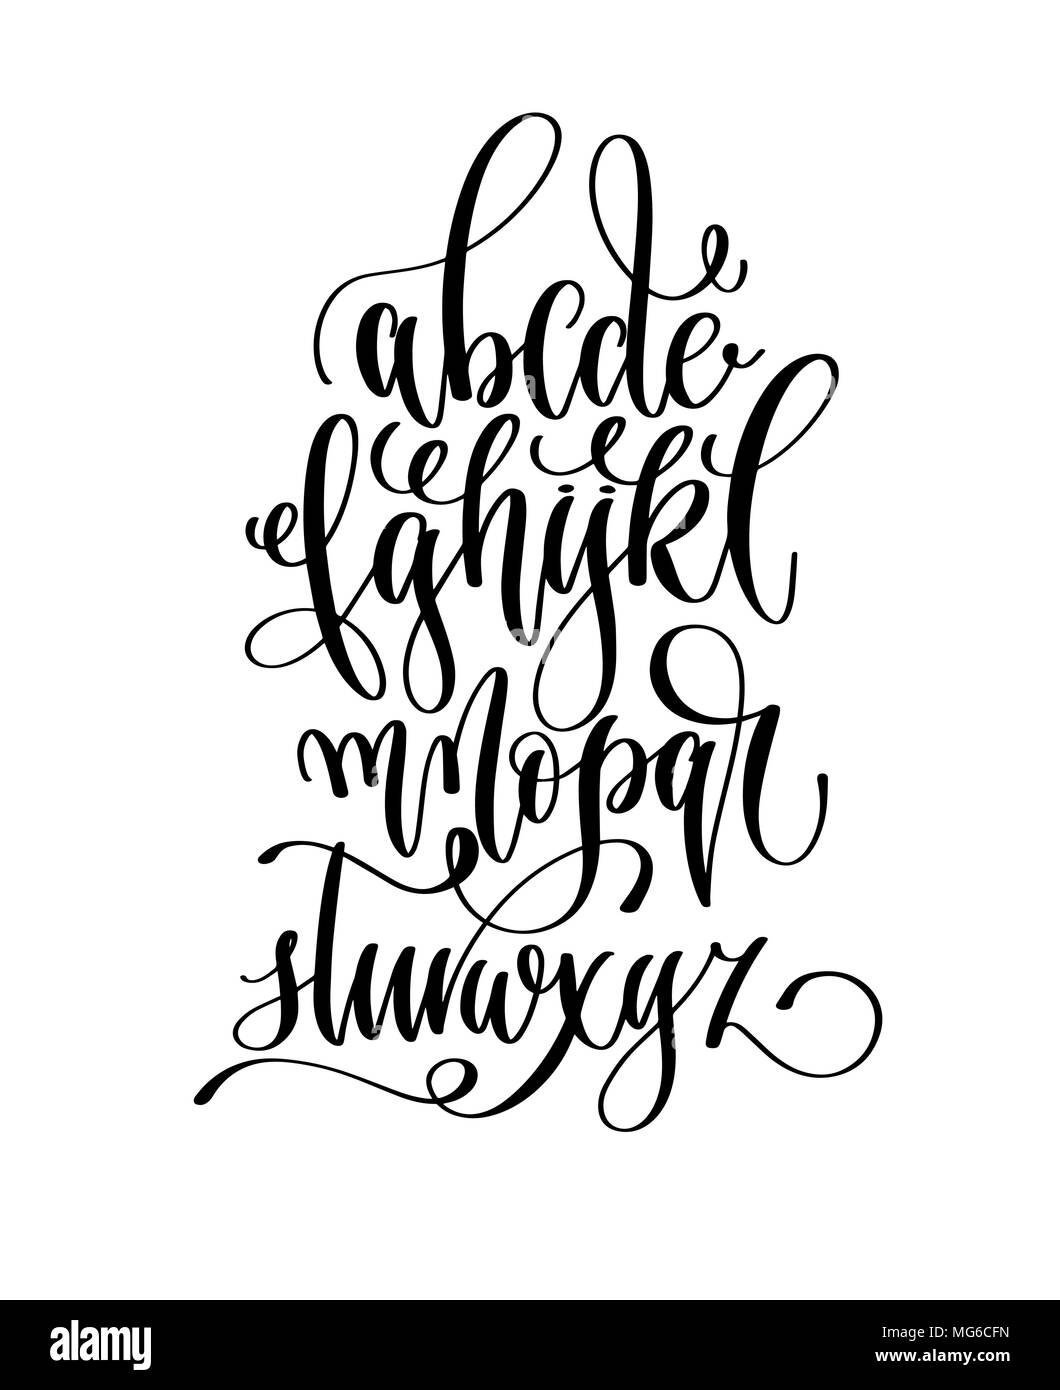 Hand Lettering Alphabet Design Black Ink Draw Poster